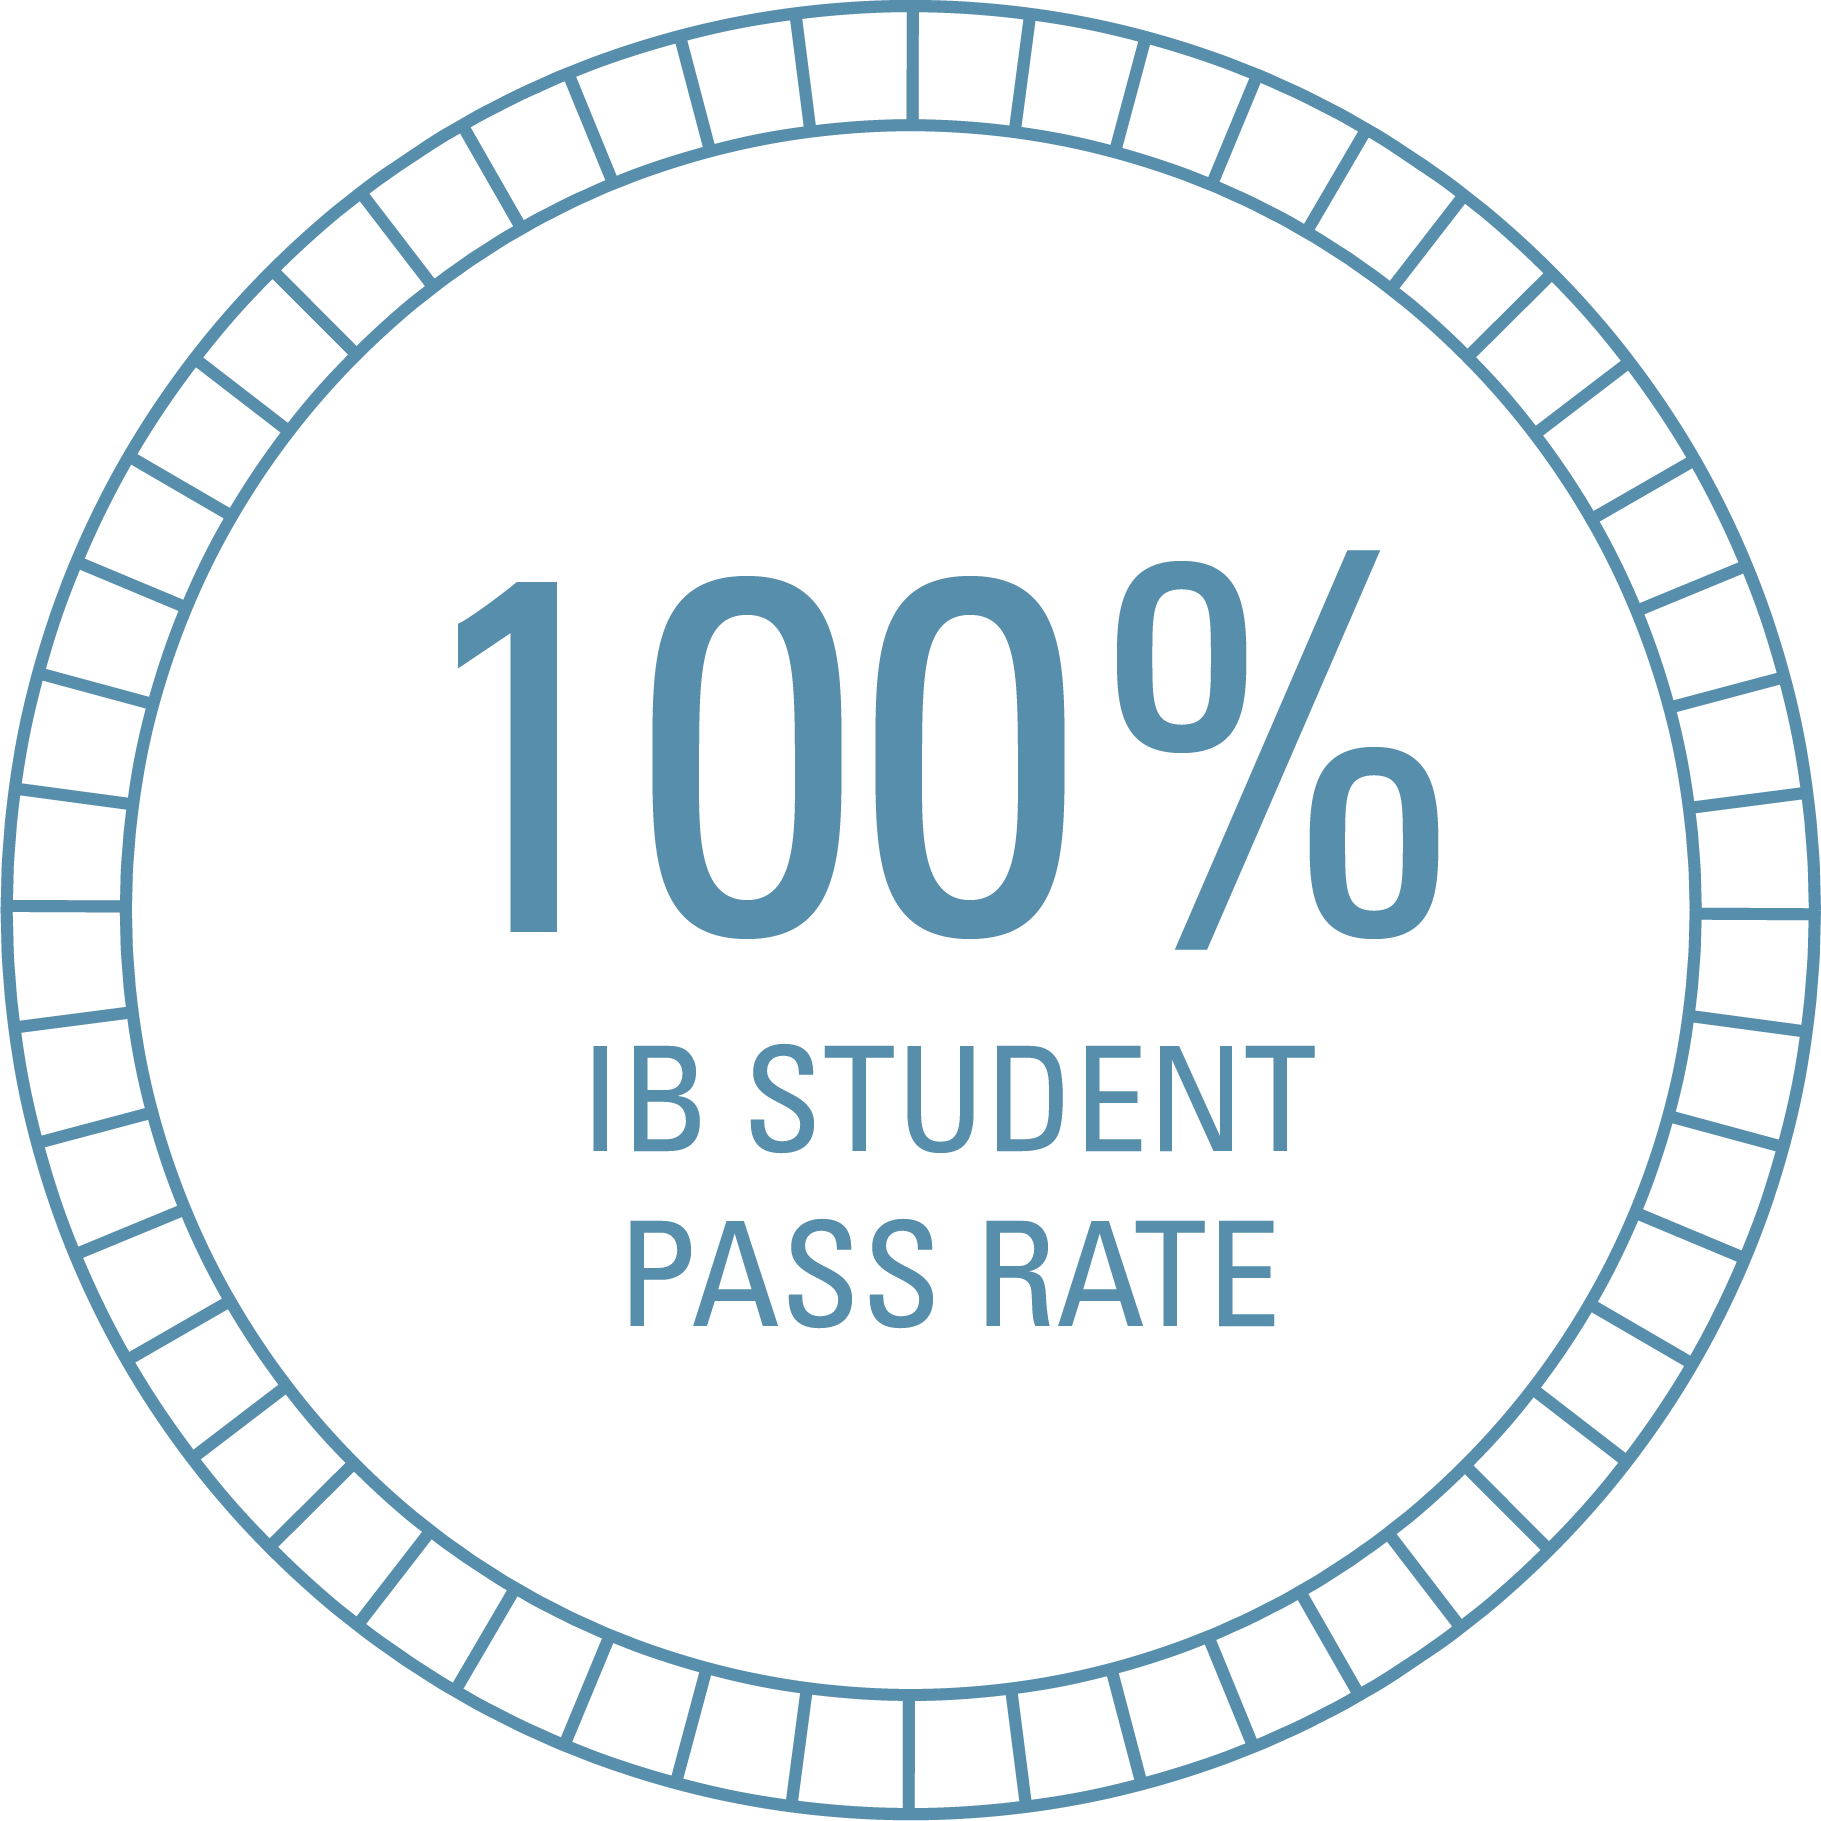 100% Students IB Past Rate